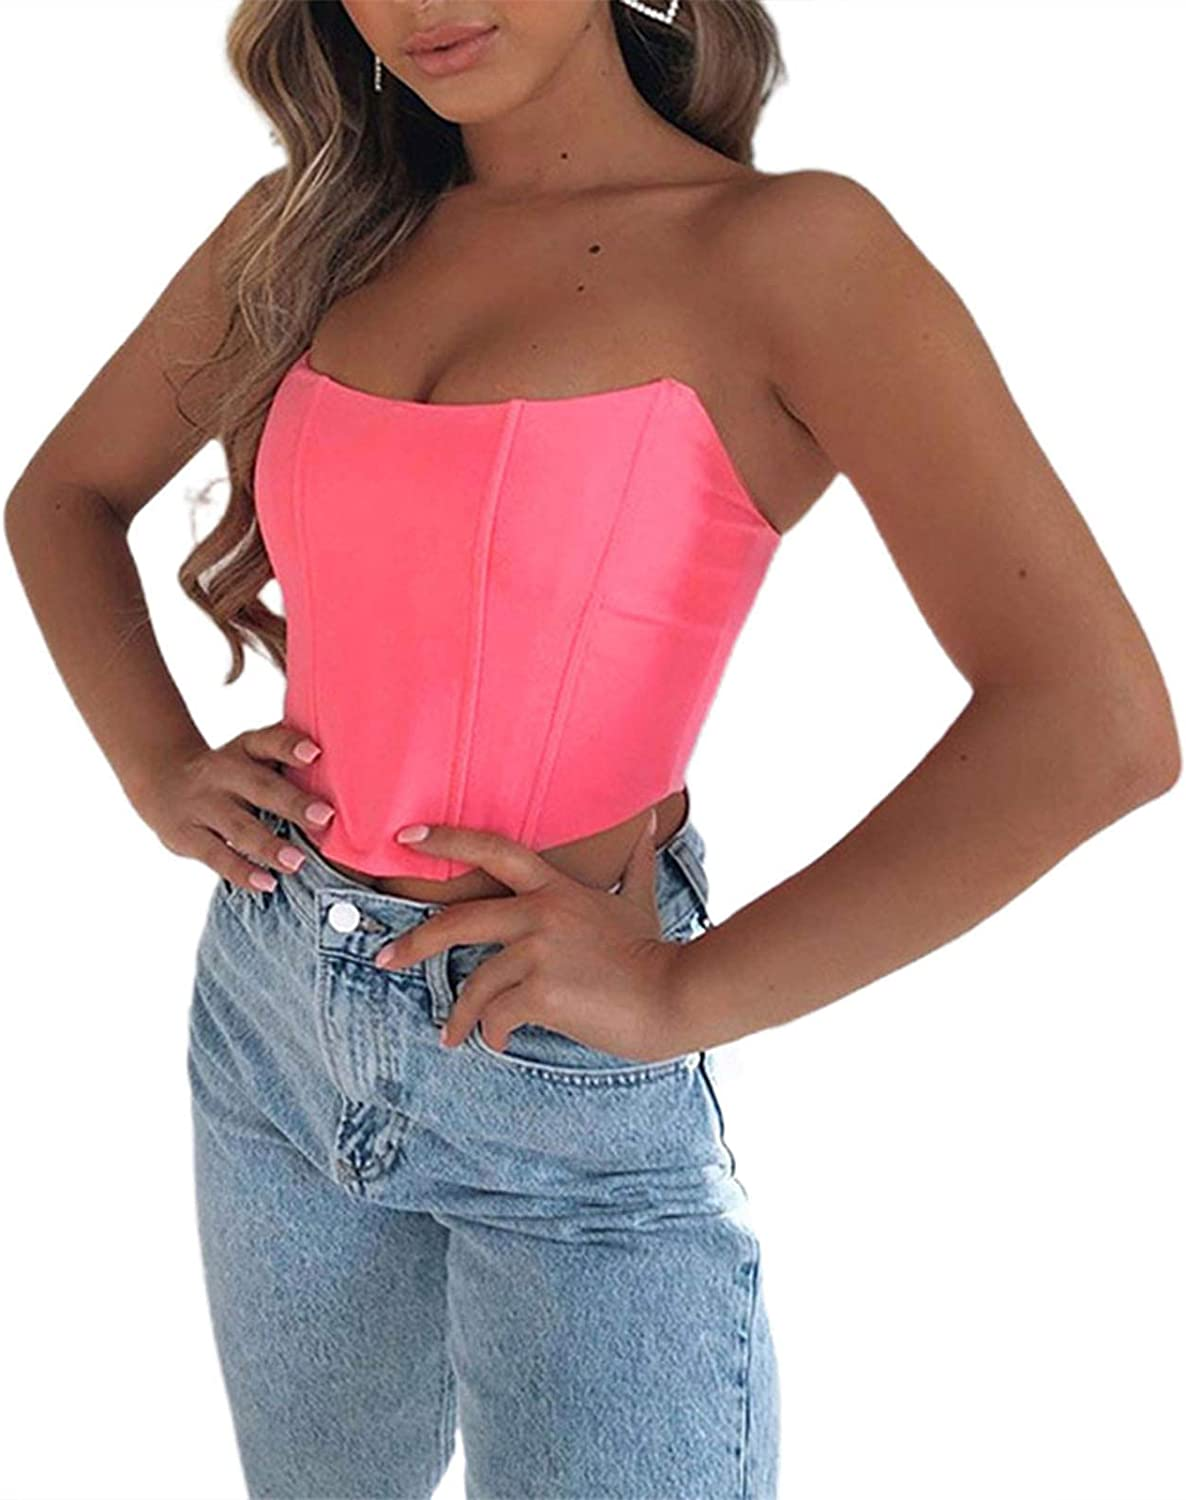 Women Bustier Corset Sexy Solid Color Tight Boned Strapless Back